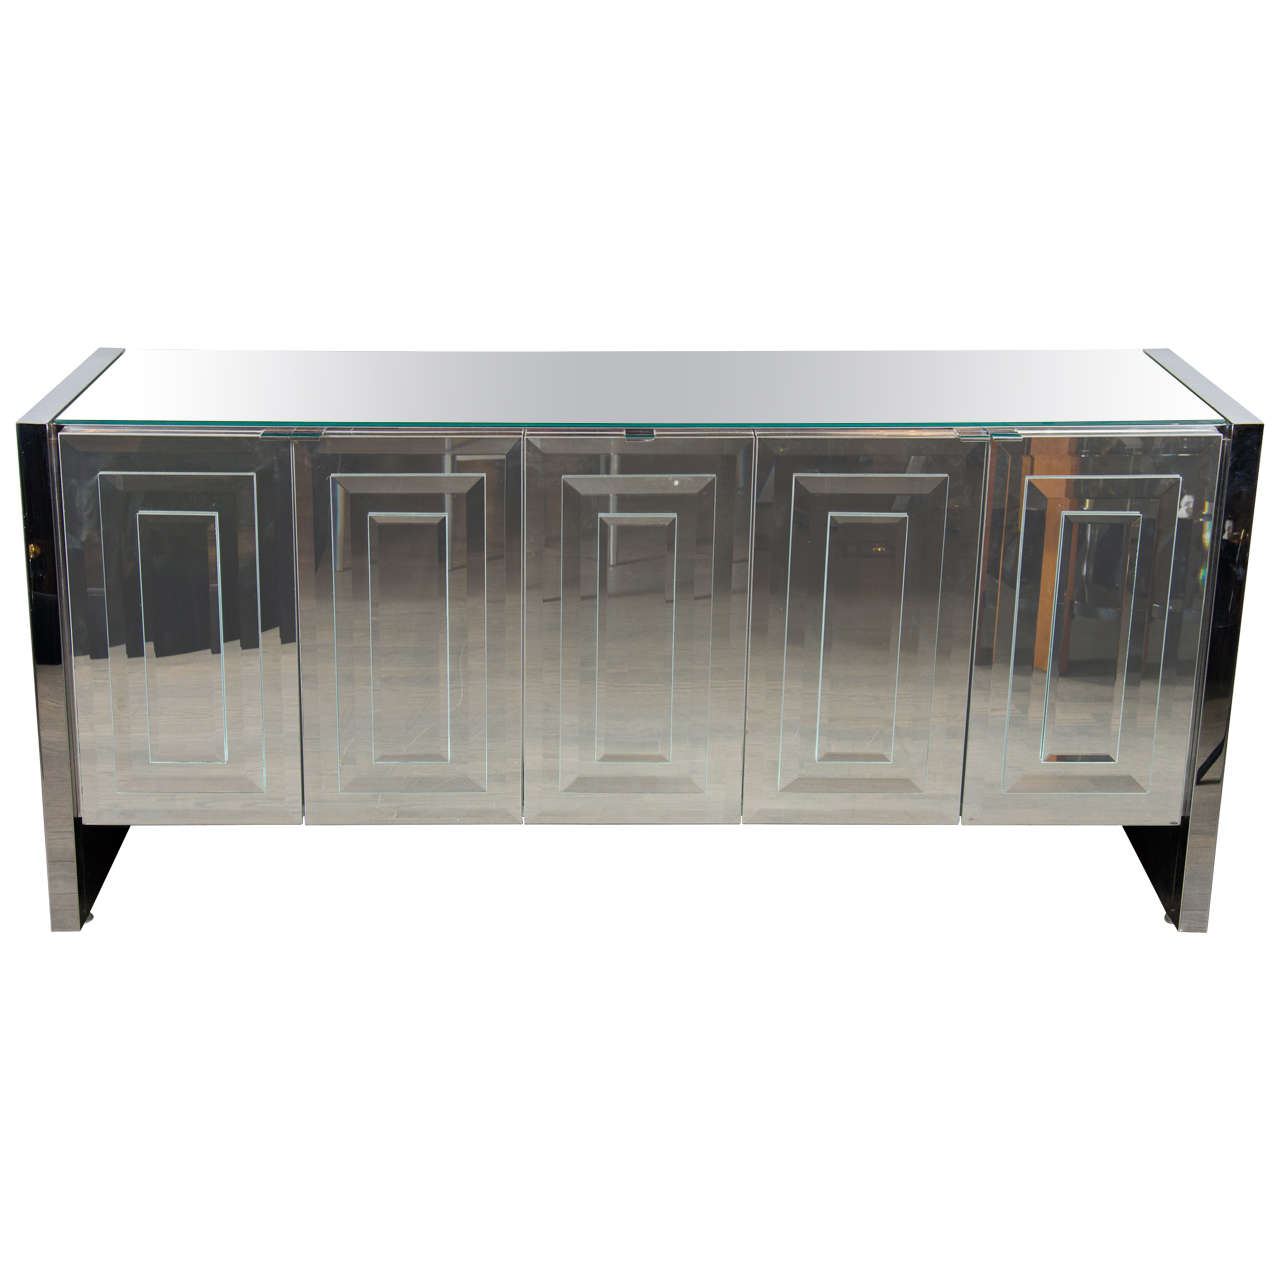 Enticing mirrored sideboard with knobs silver color and with decorative pattern design mirrored sideboard ideas